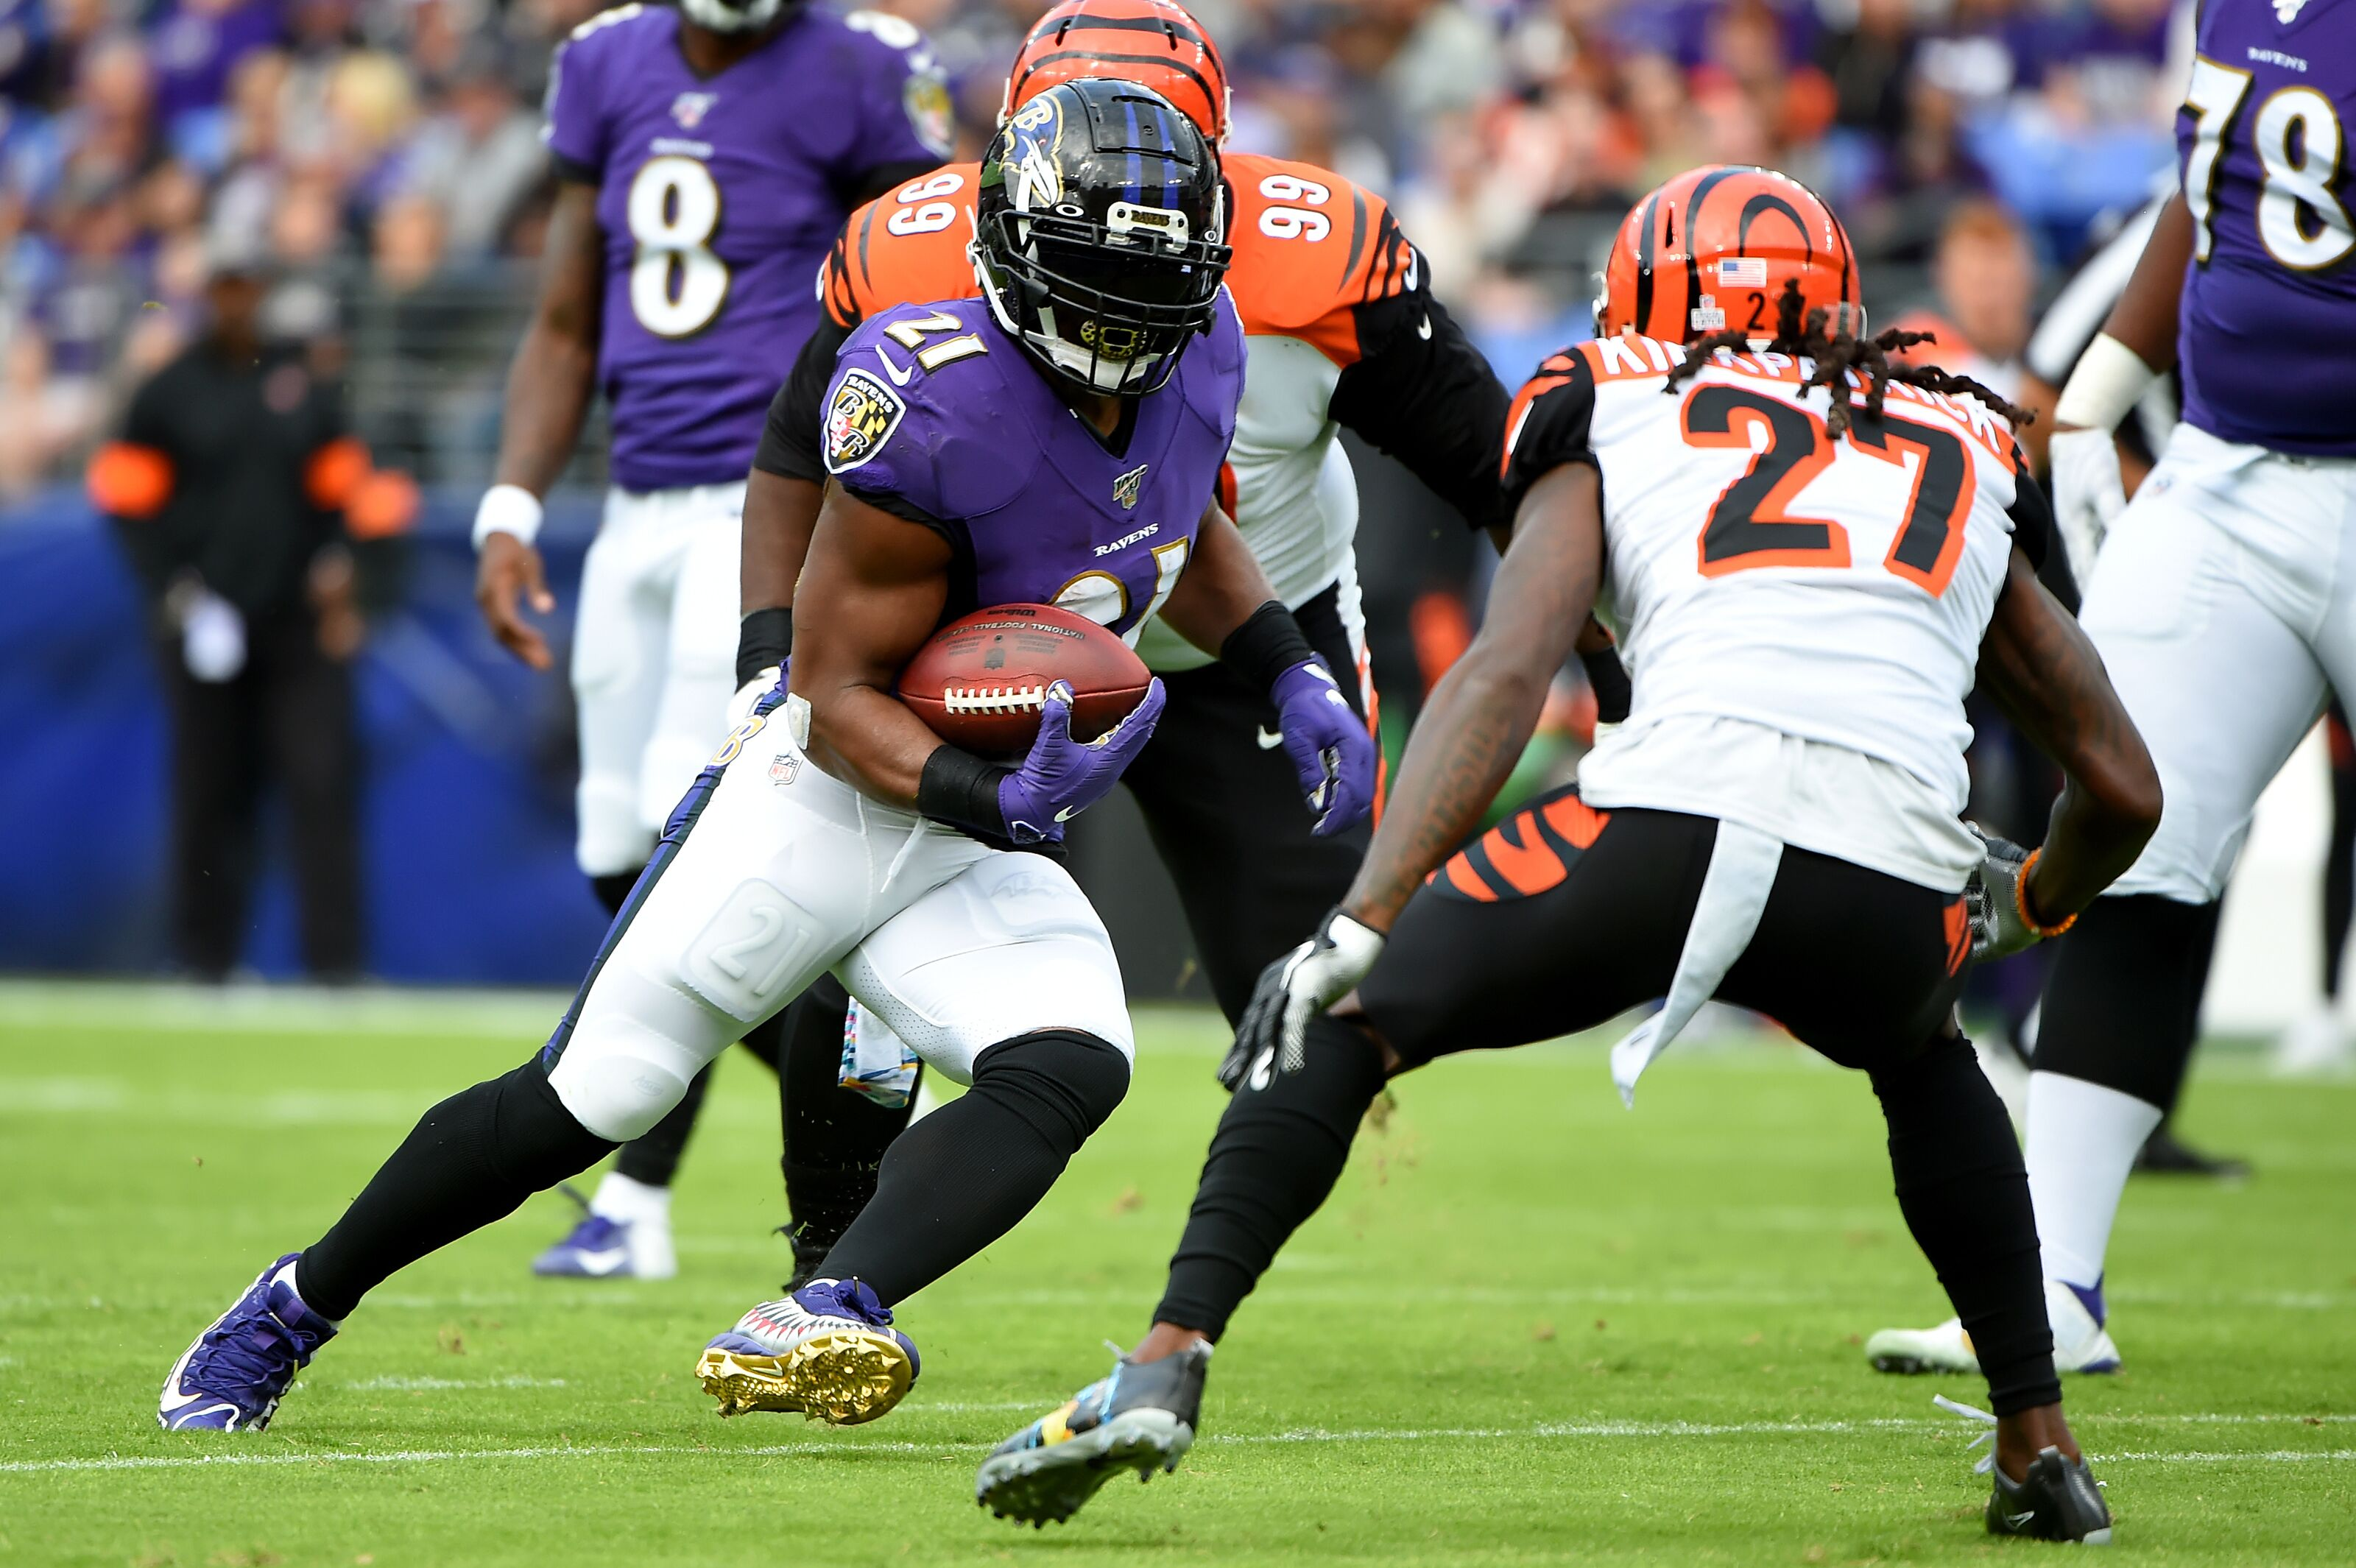 Lamar Jackson has a huge day as Bengals lose their sixth straight, 23-17 at Baltimore